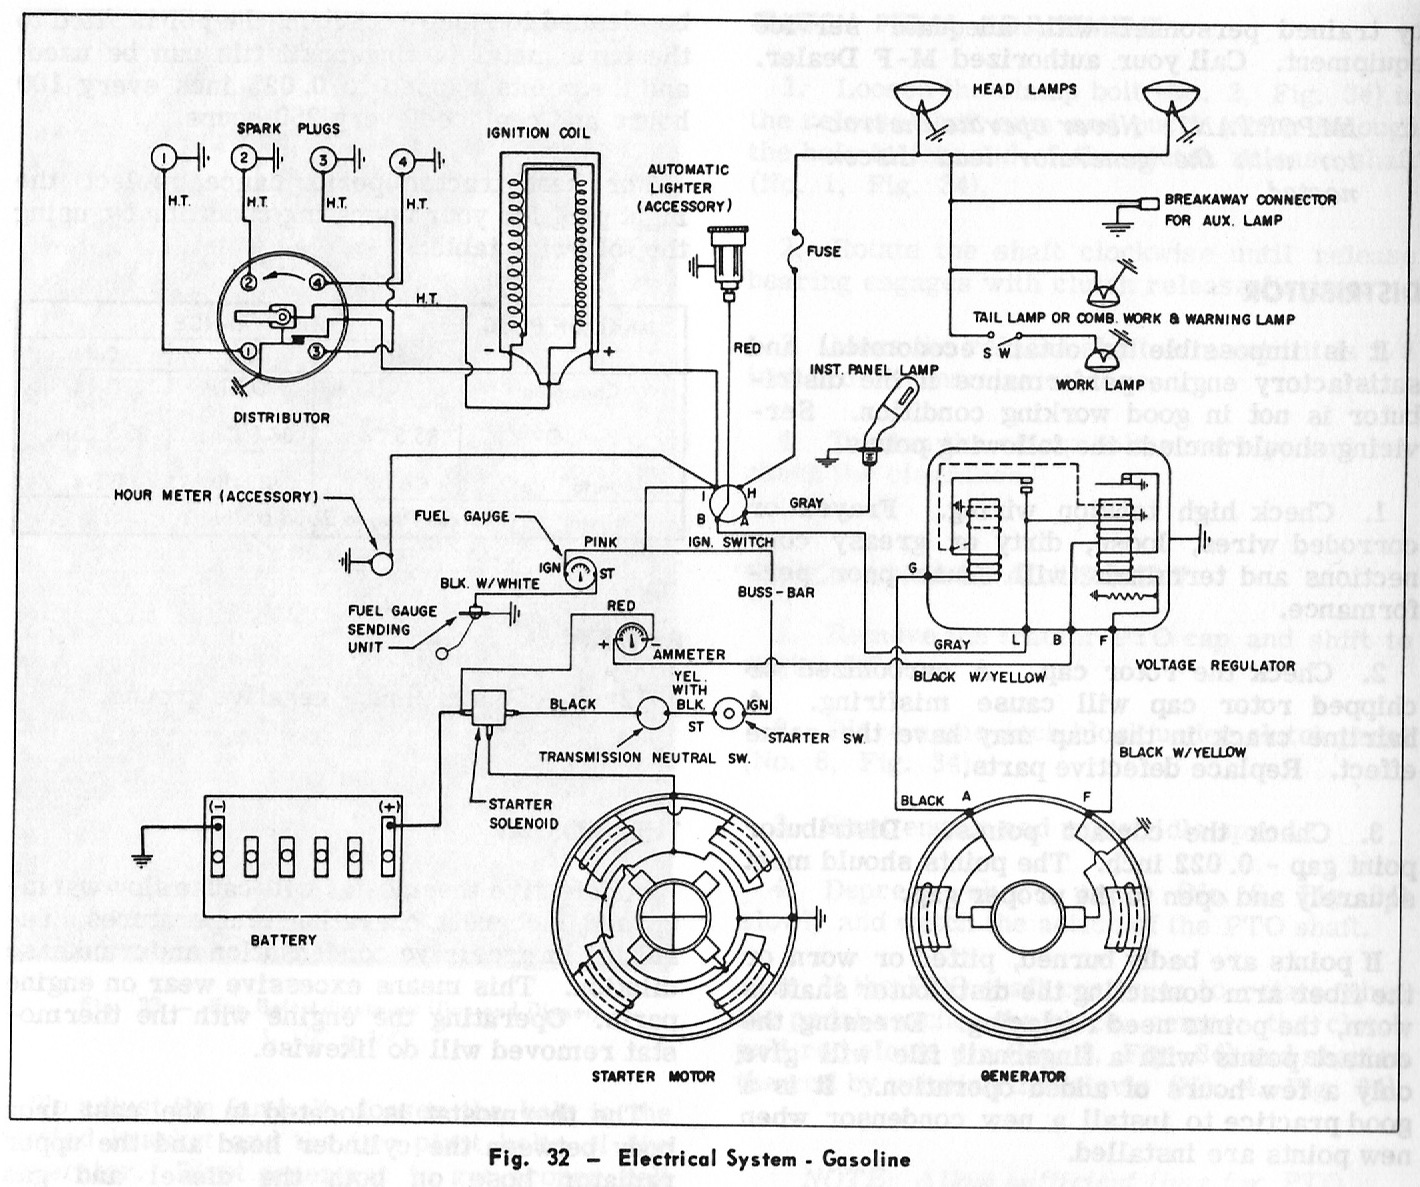 Mf 65 Wiring Diagram, Mf, Free Engine Image For User